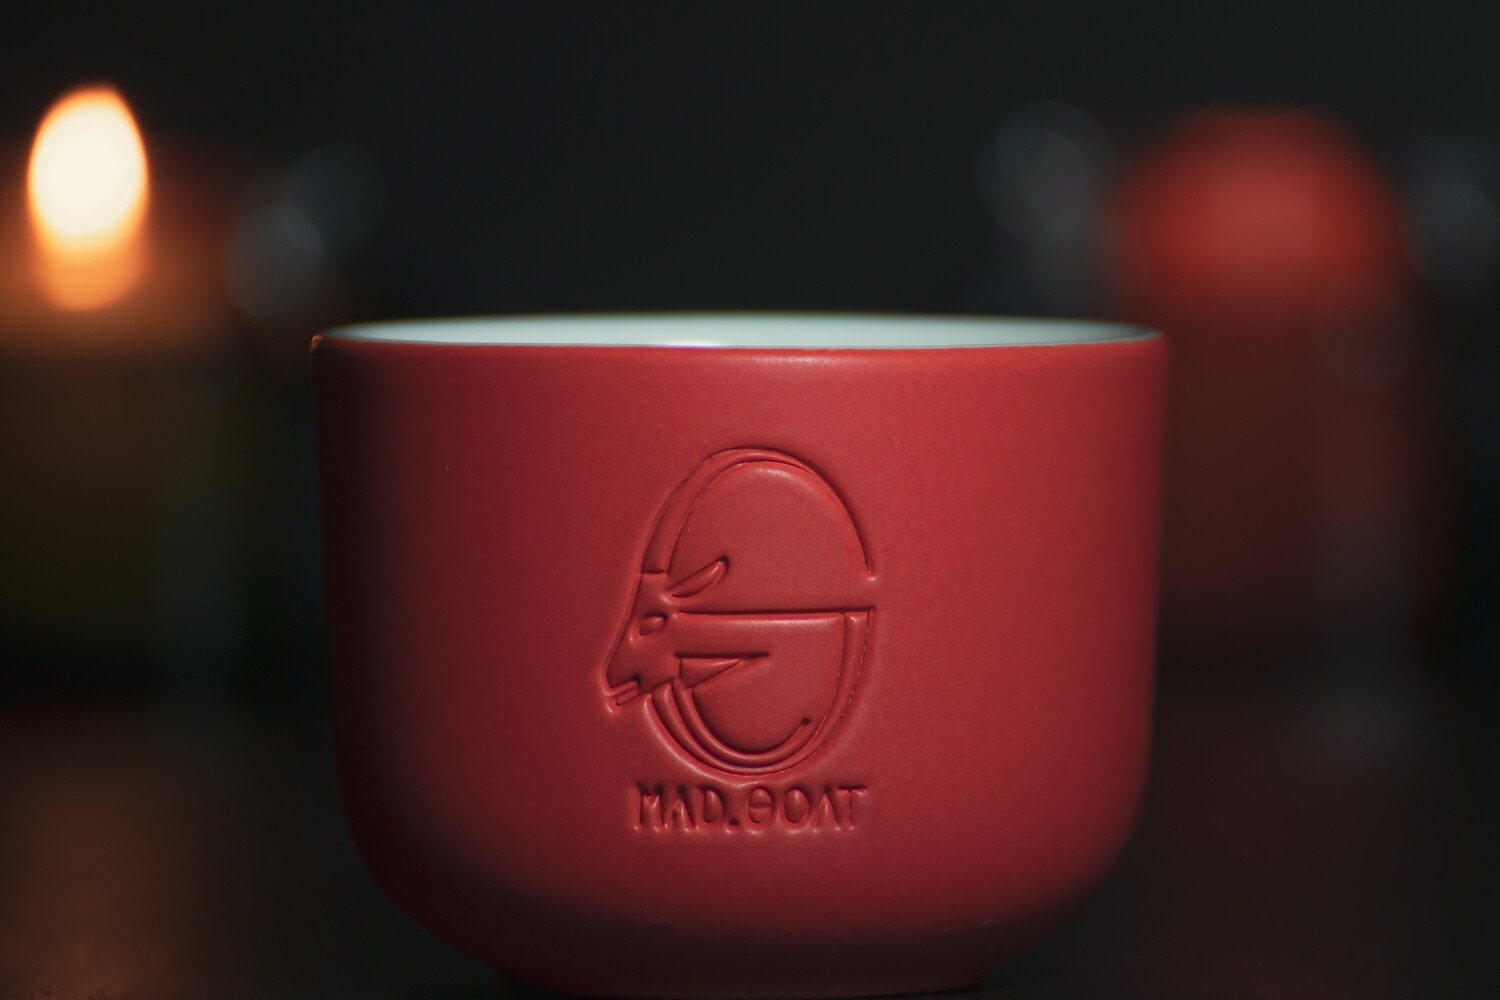 Cappuccino cup (red, no handle)